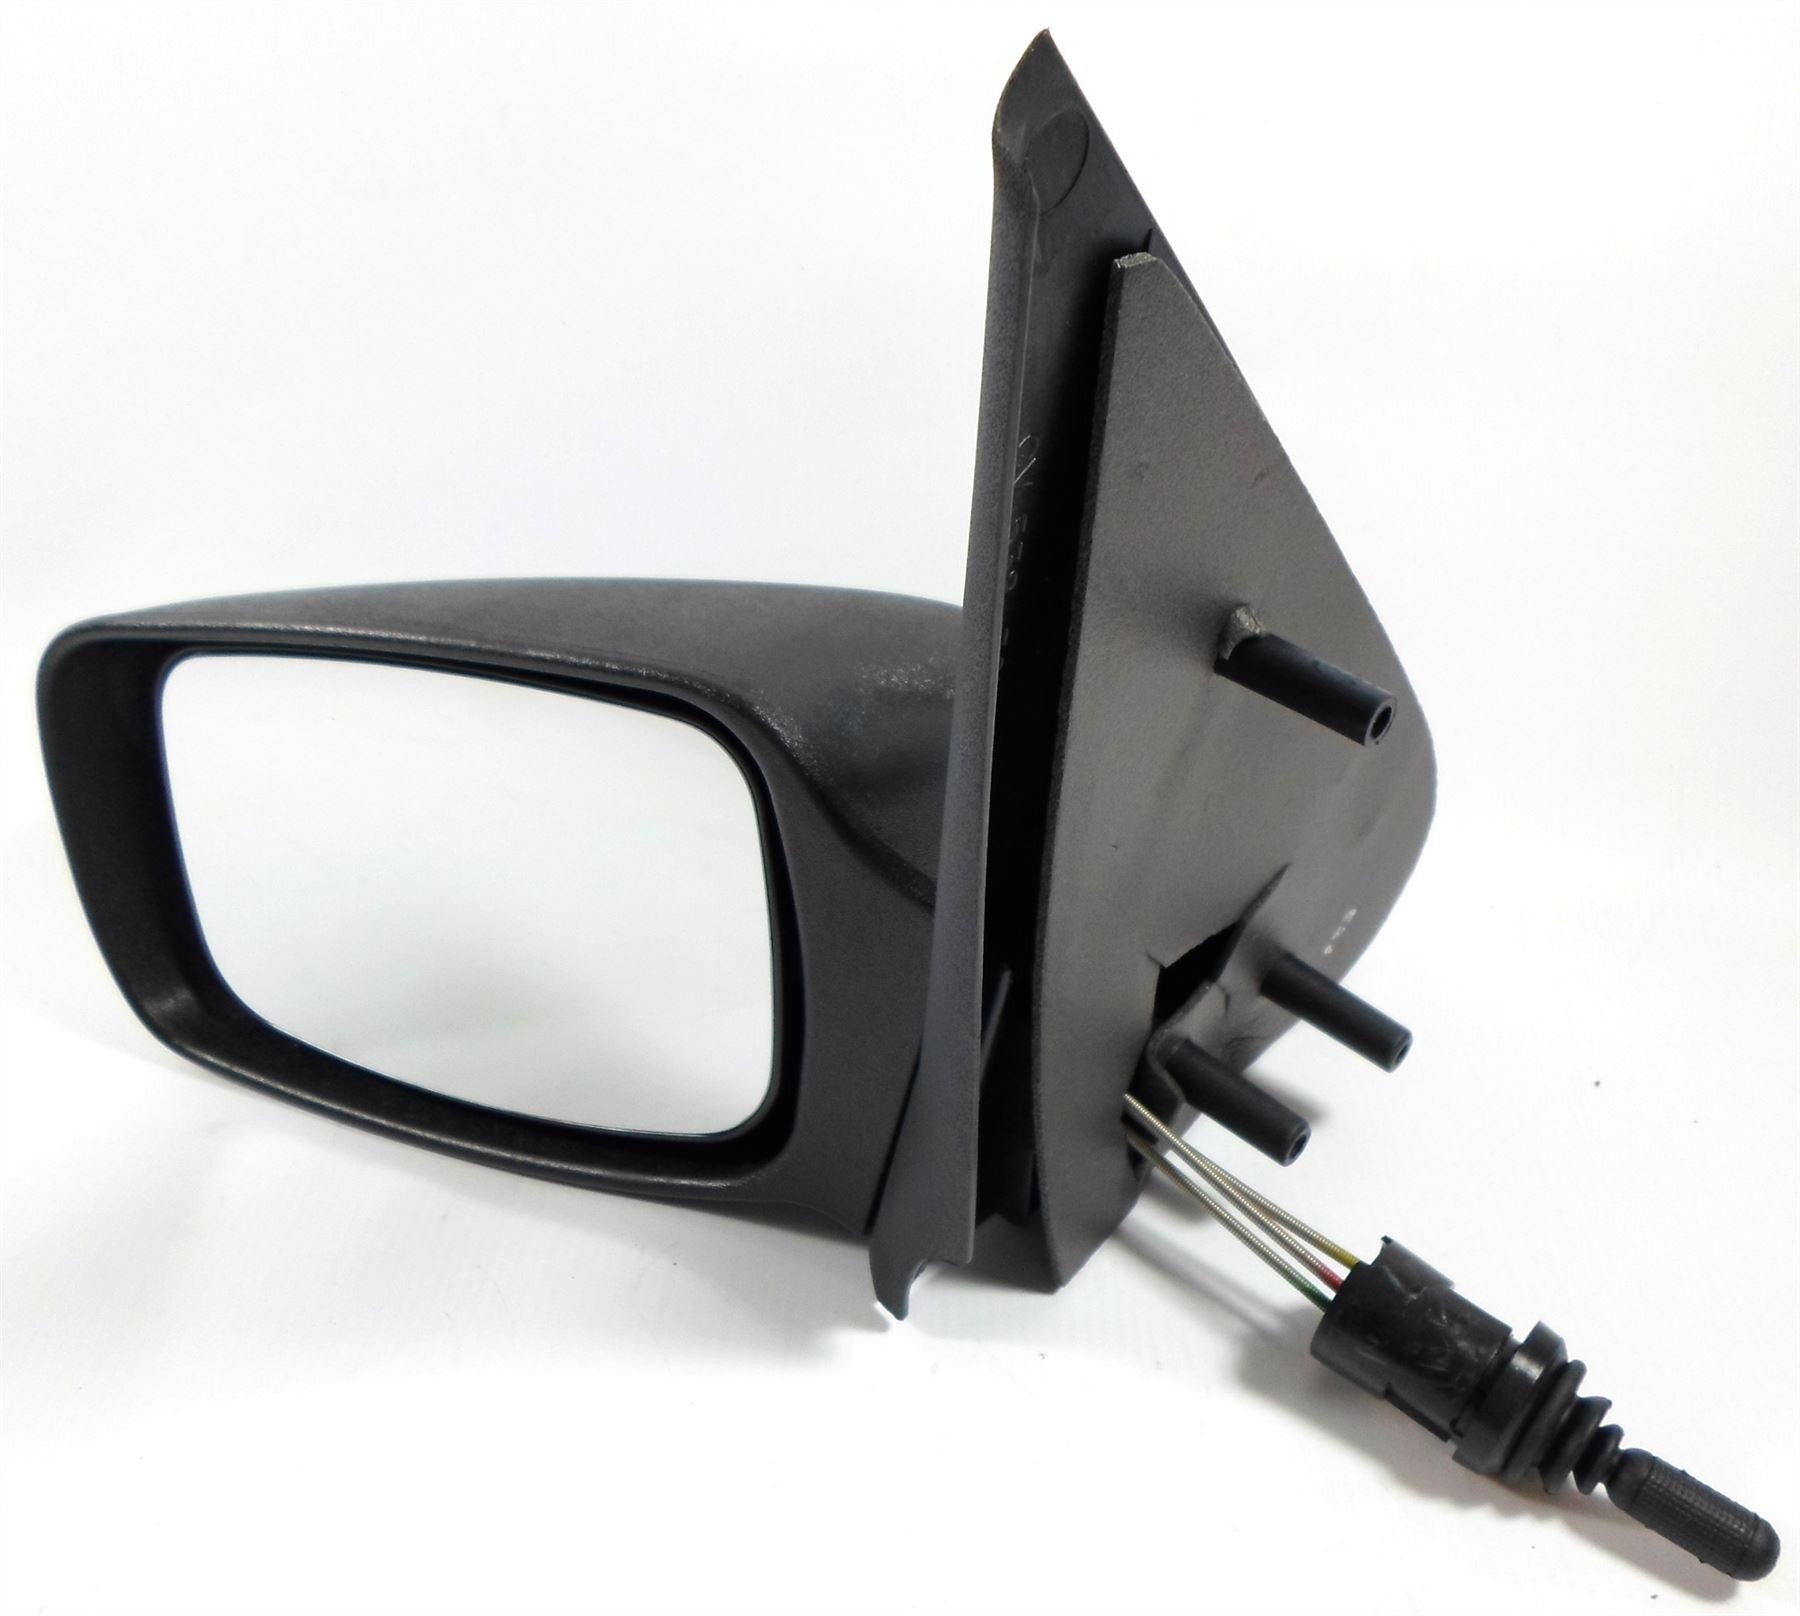 Ford Fiesta Mk.5 1999-2002 Cable Wing Mirror Black Textured Passenger Side N/S